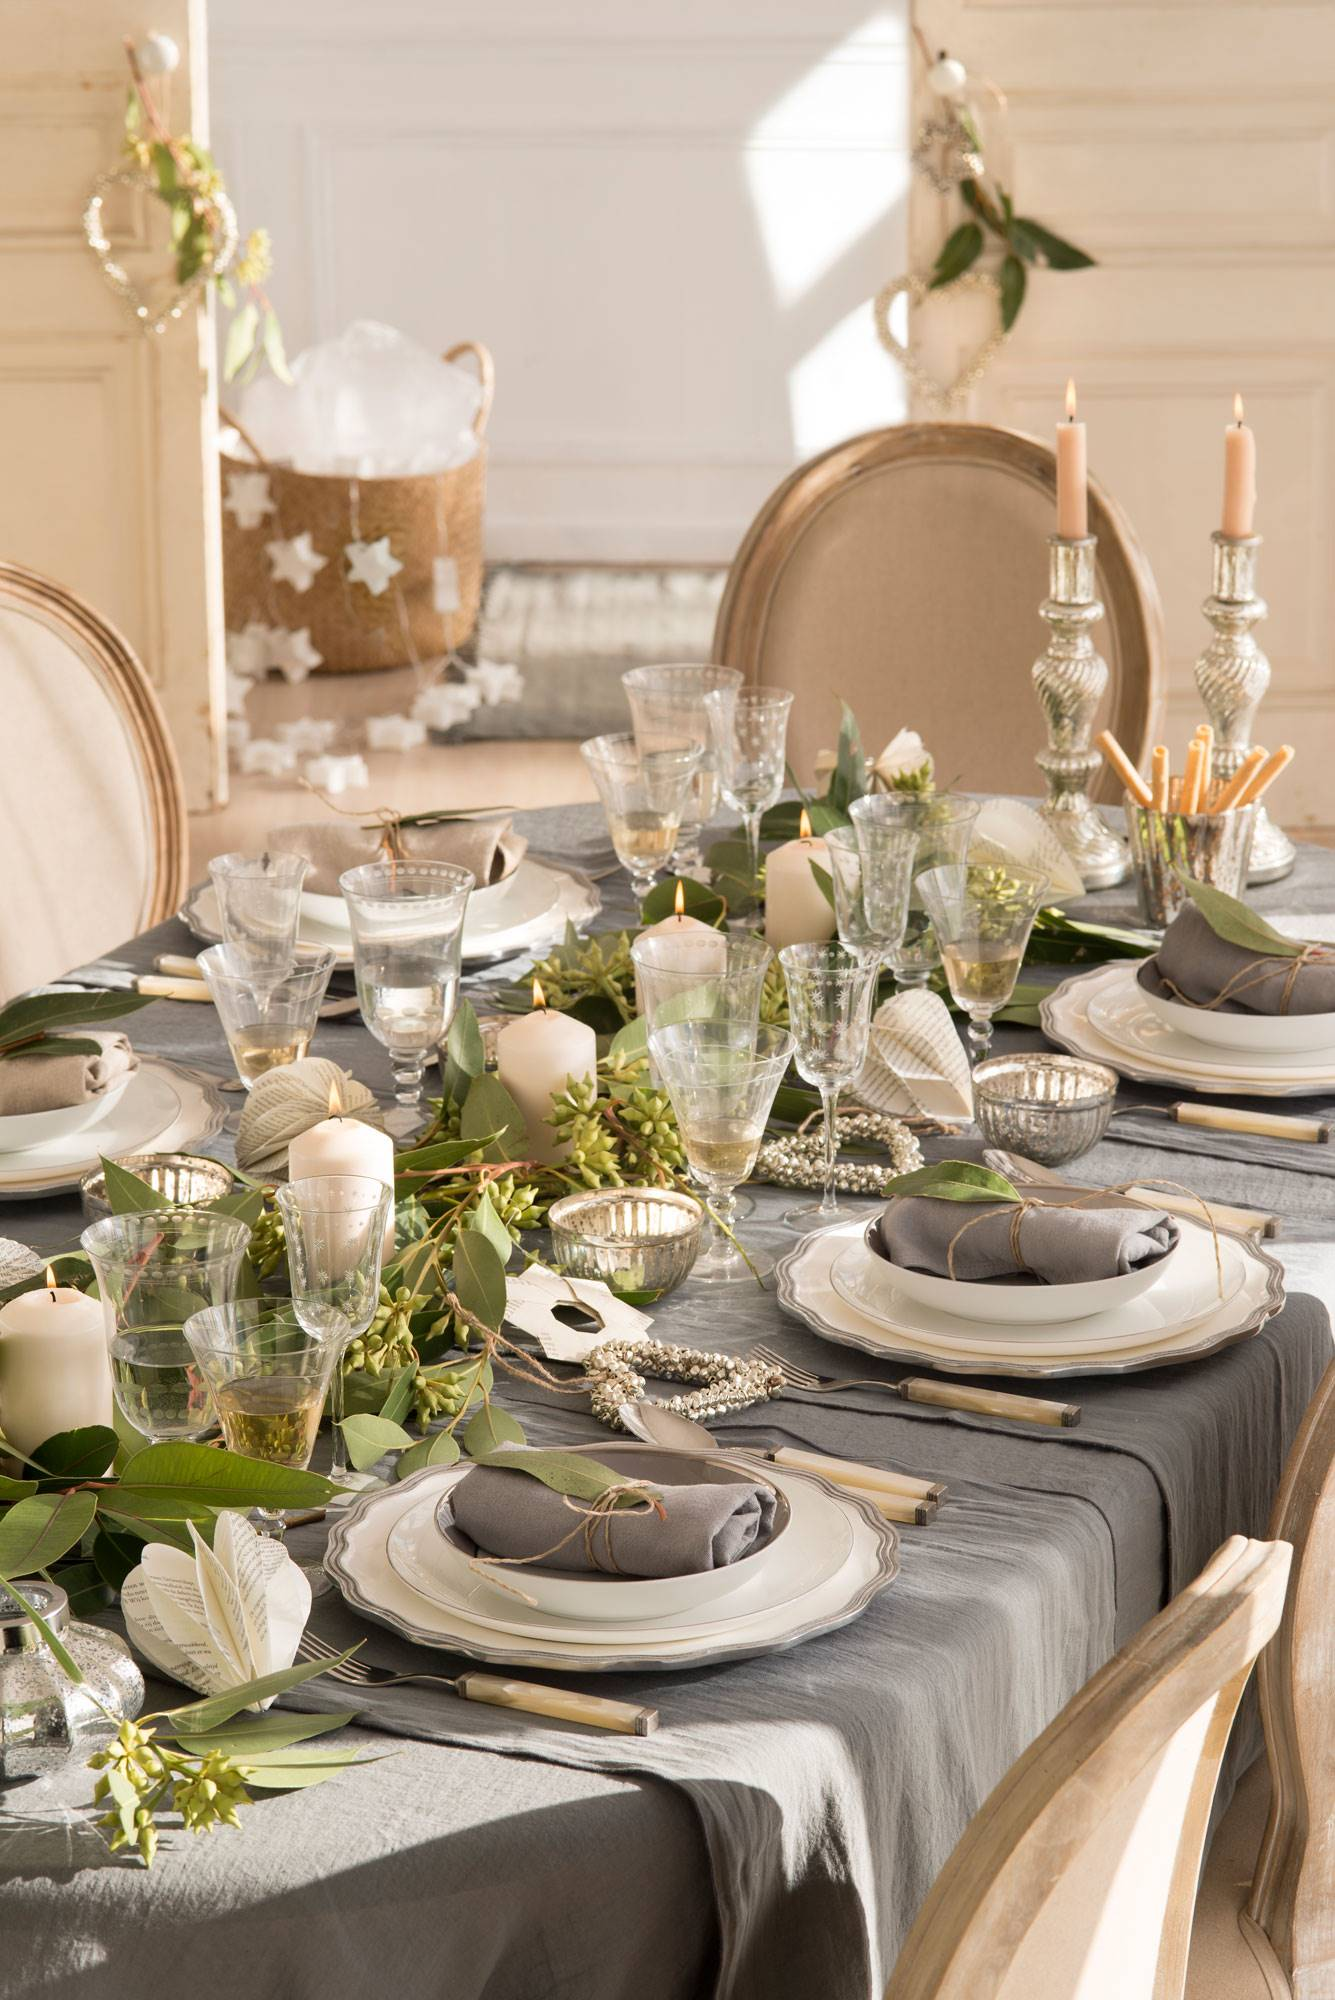 A GARLAND OF GREENS AND CANDLES